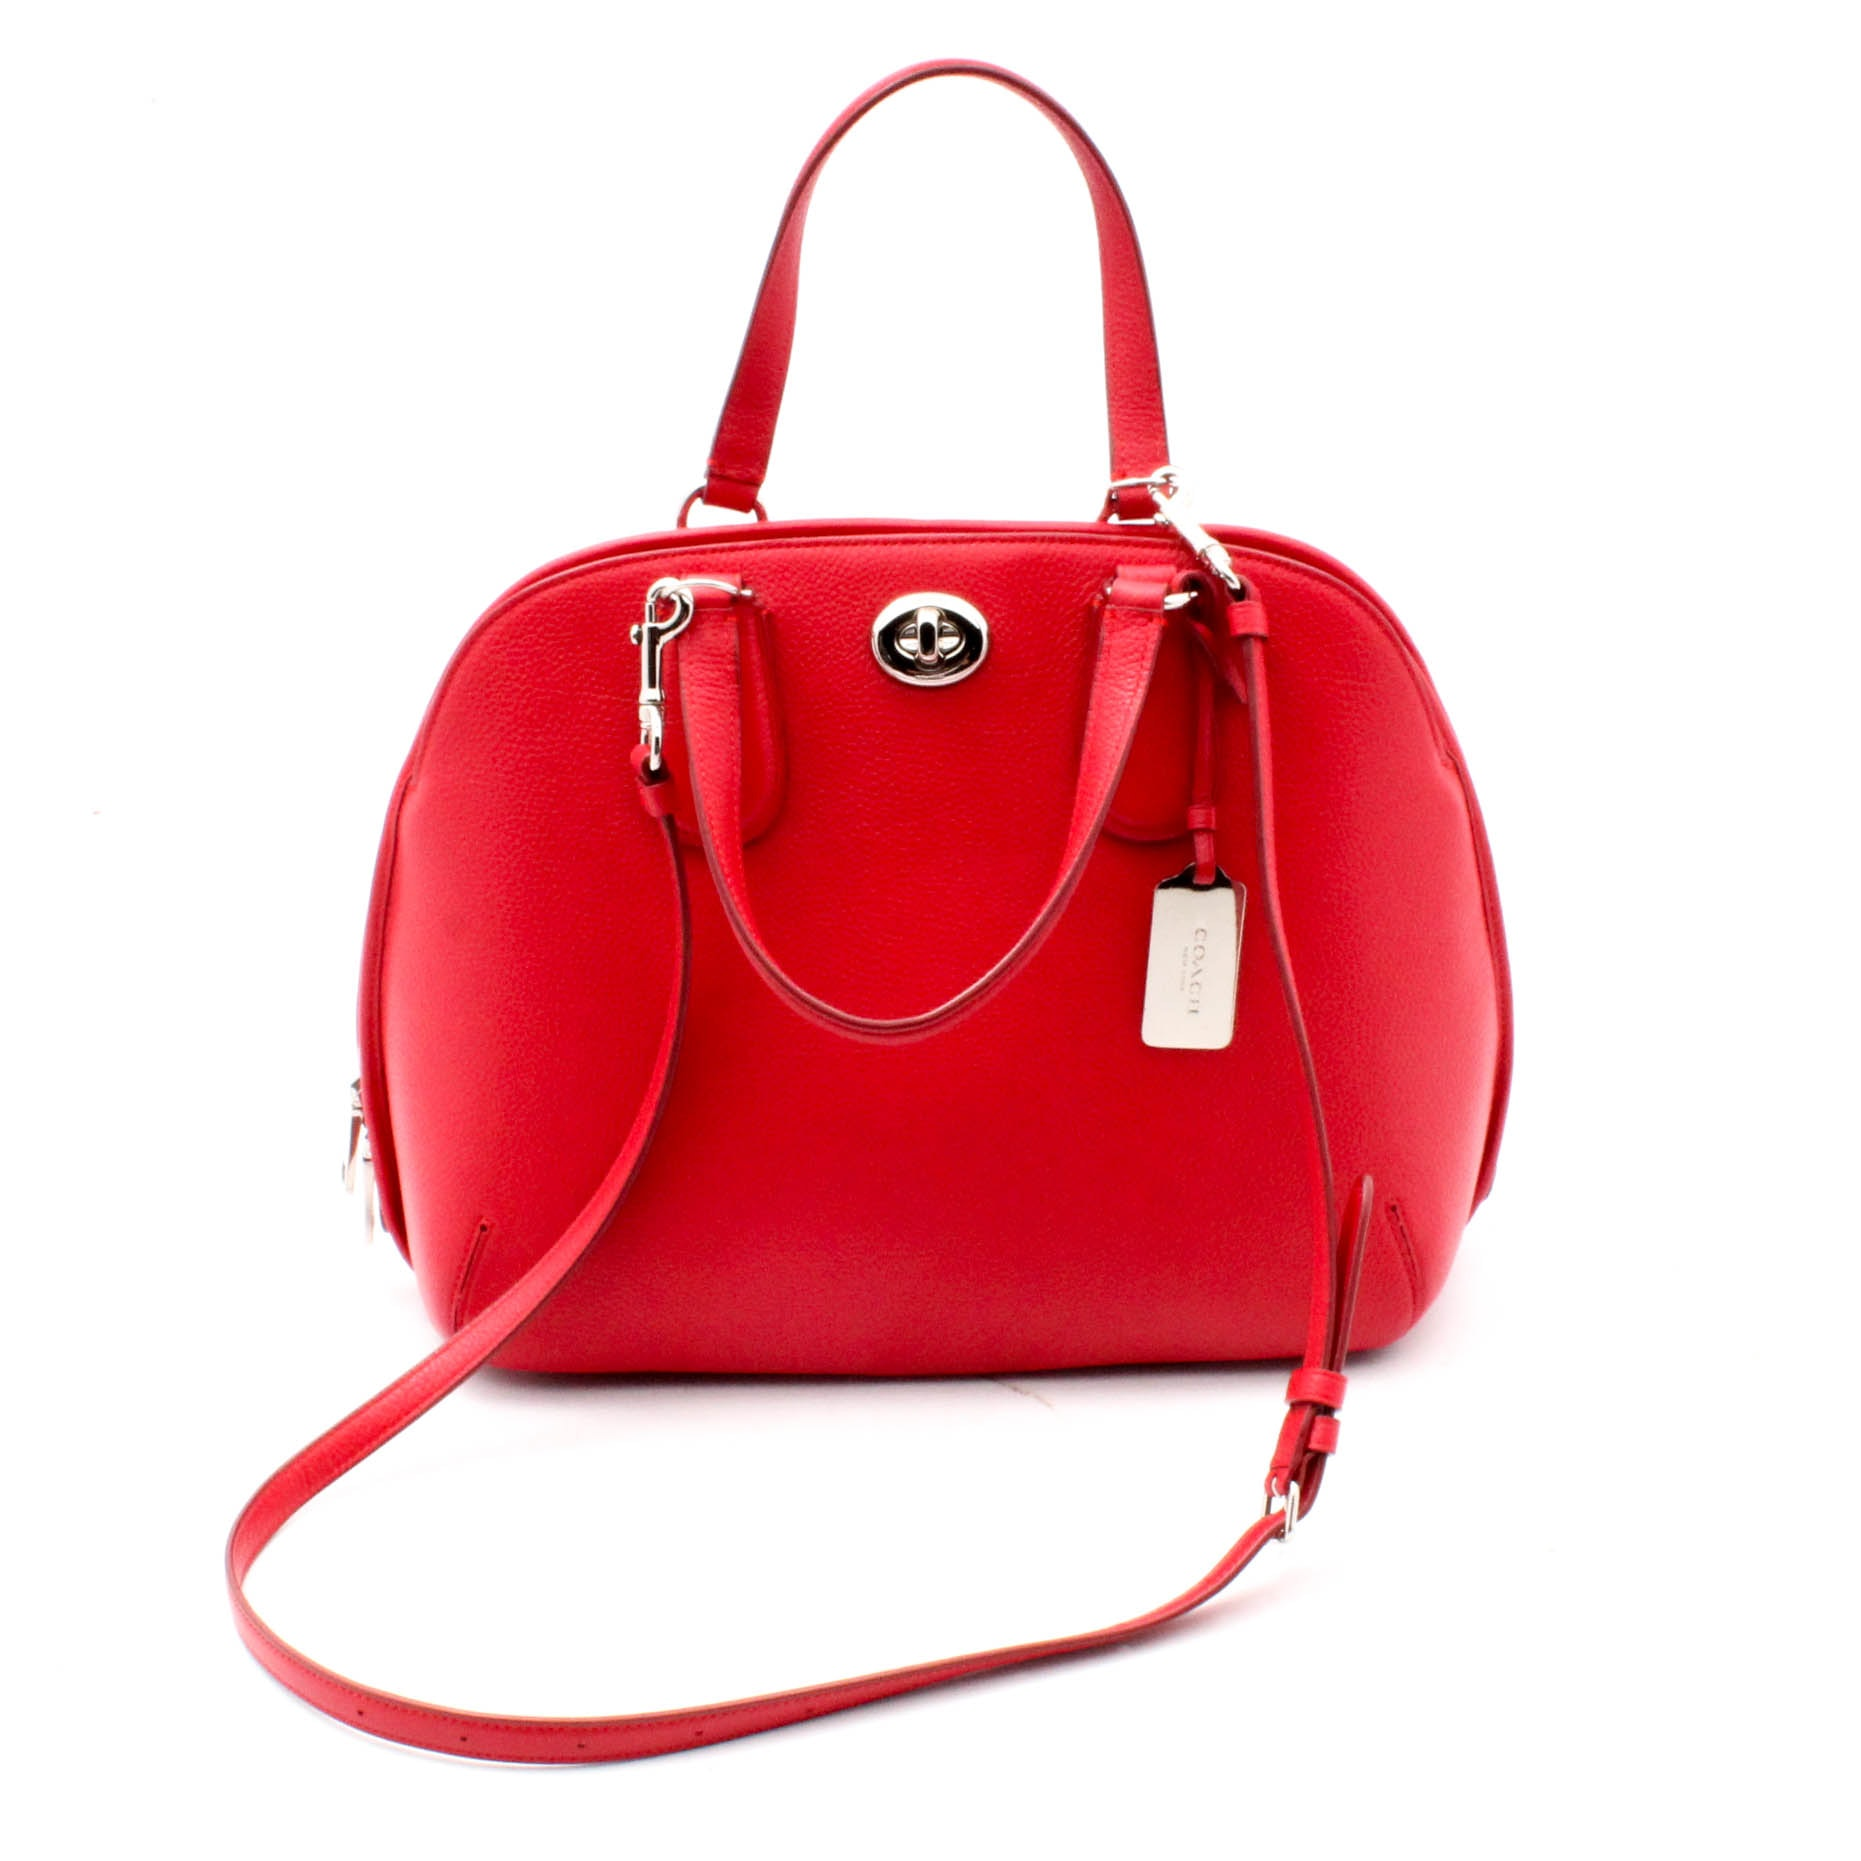 Coach New York Prince Street Red Pebbled Leather Satchel